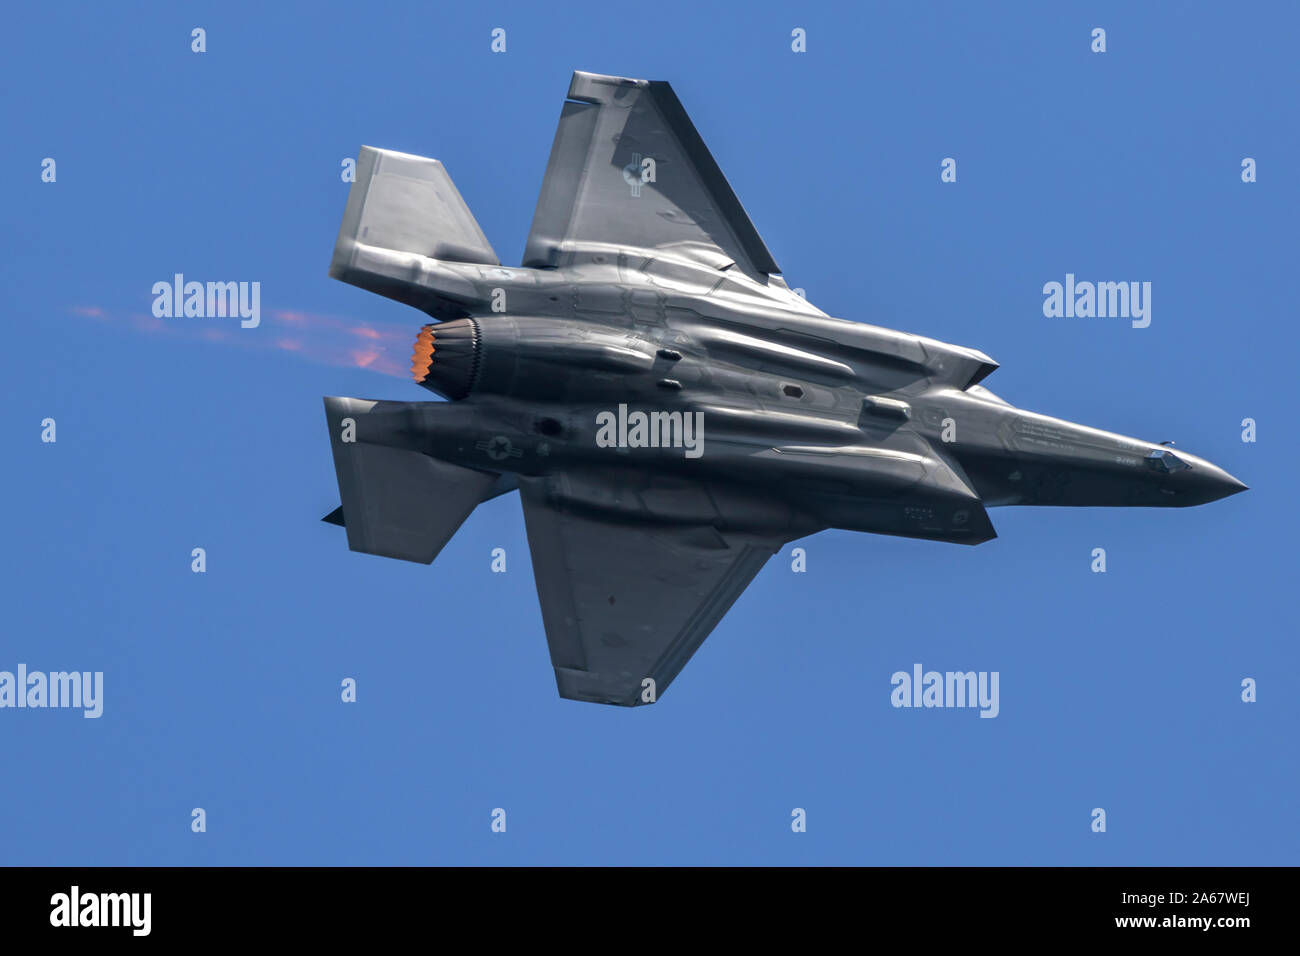 United States Air Force Lockheed Martin F-35 Lightning II fifth generation fighter in afterburner. Stock Photo